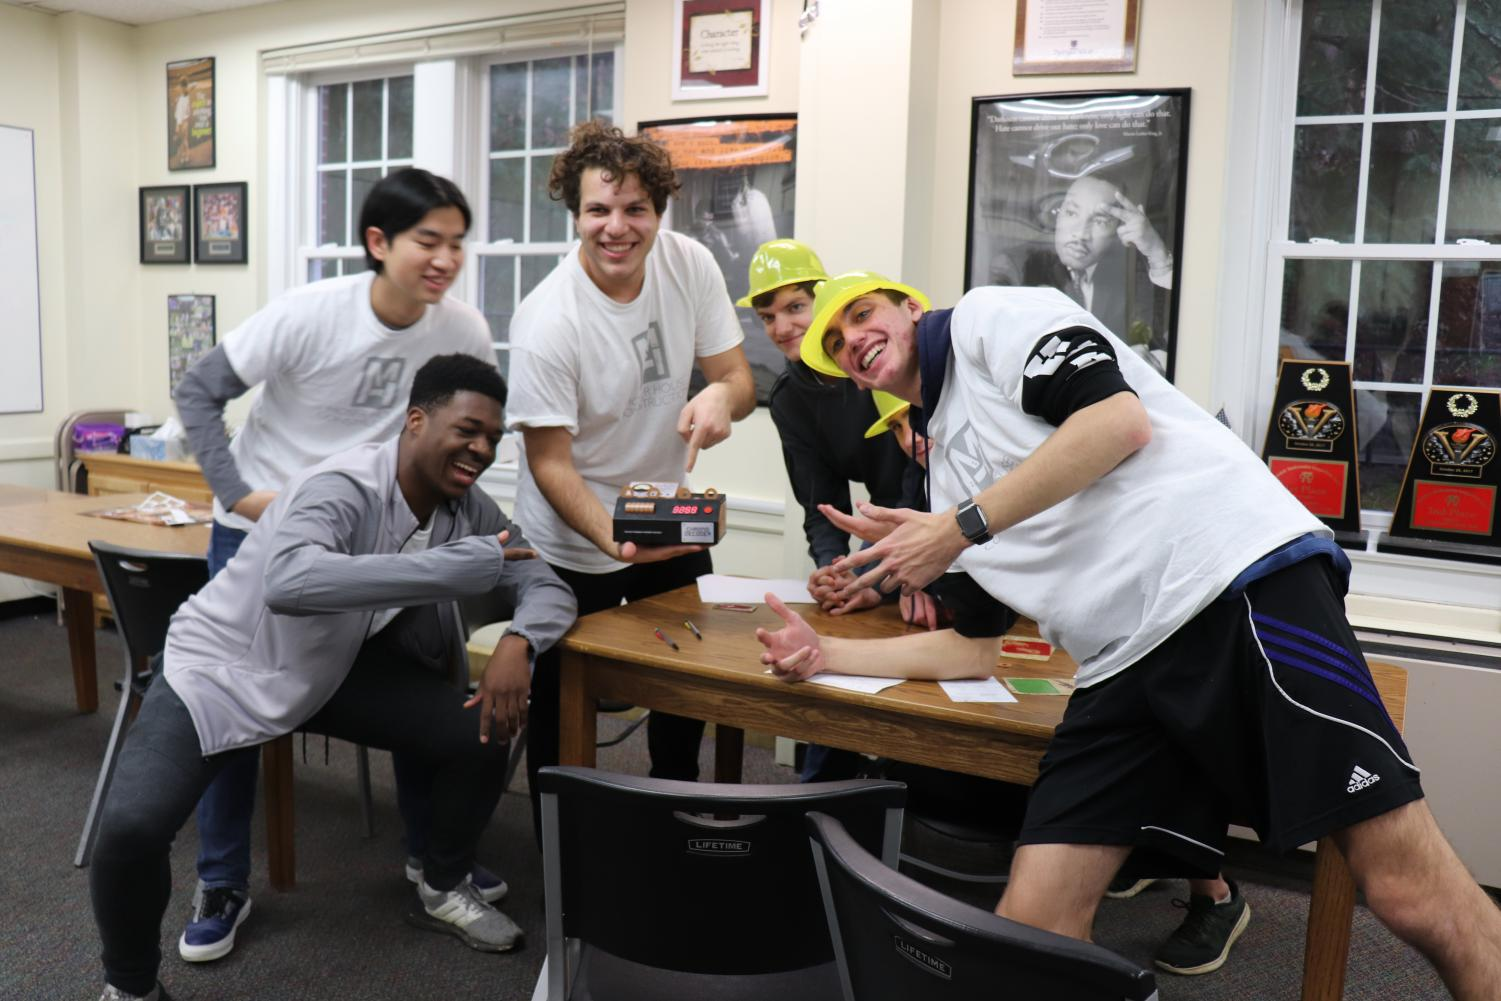 Moser House posing next to their completed escape room, and is the only house to finish the task.